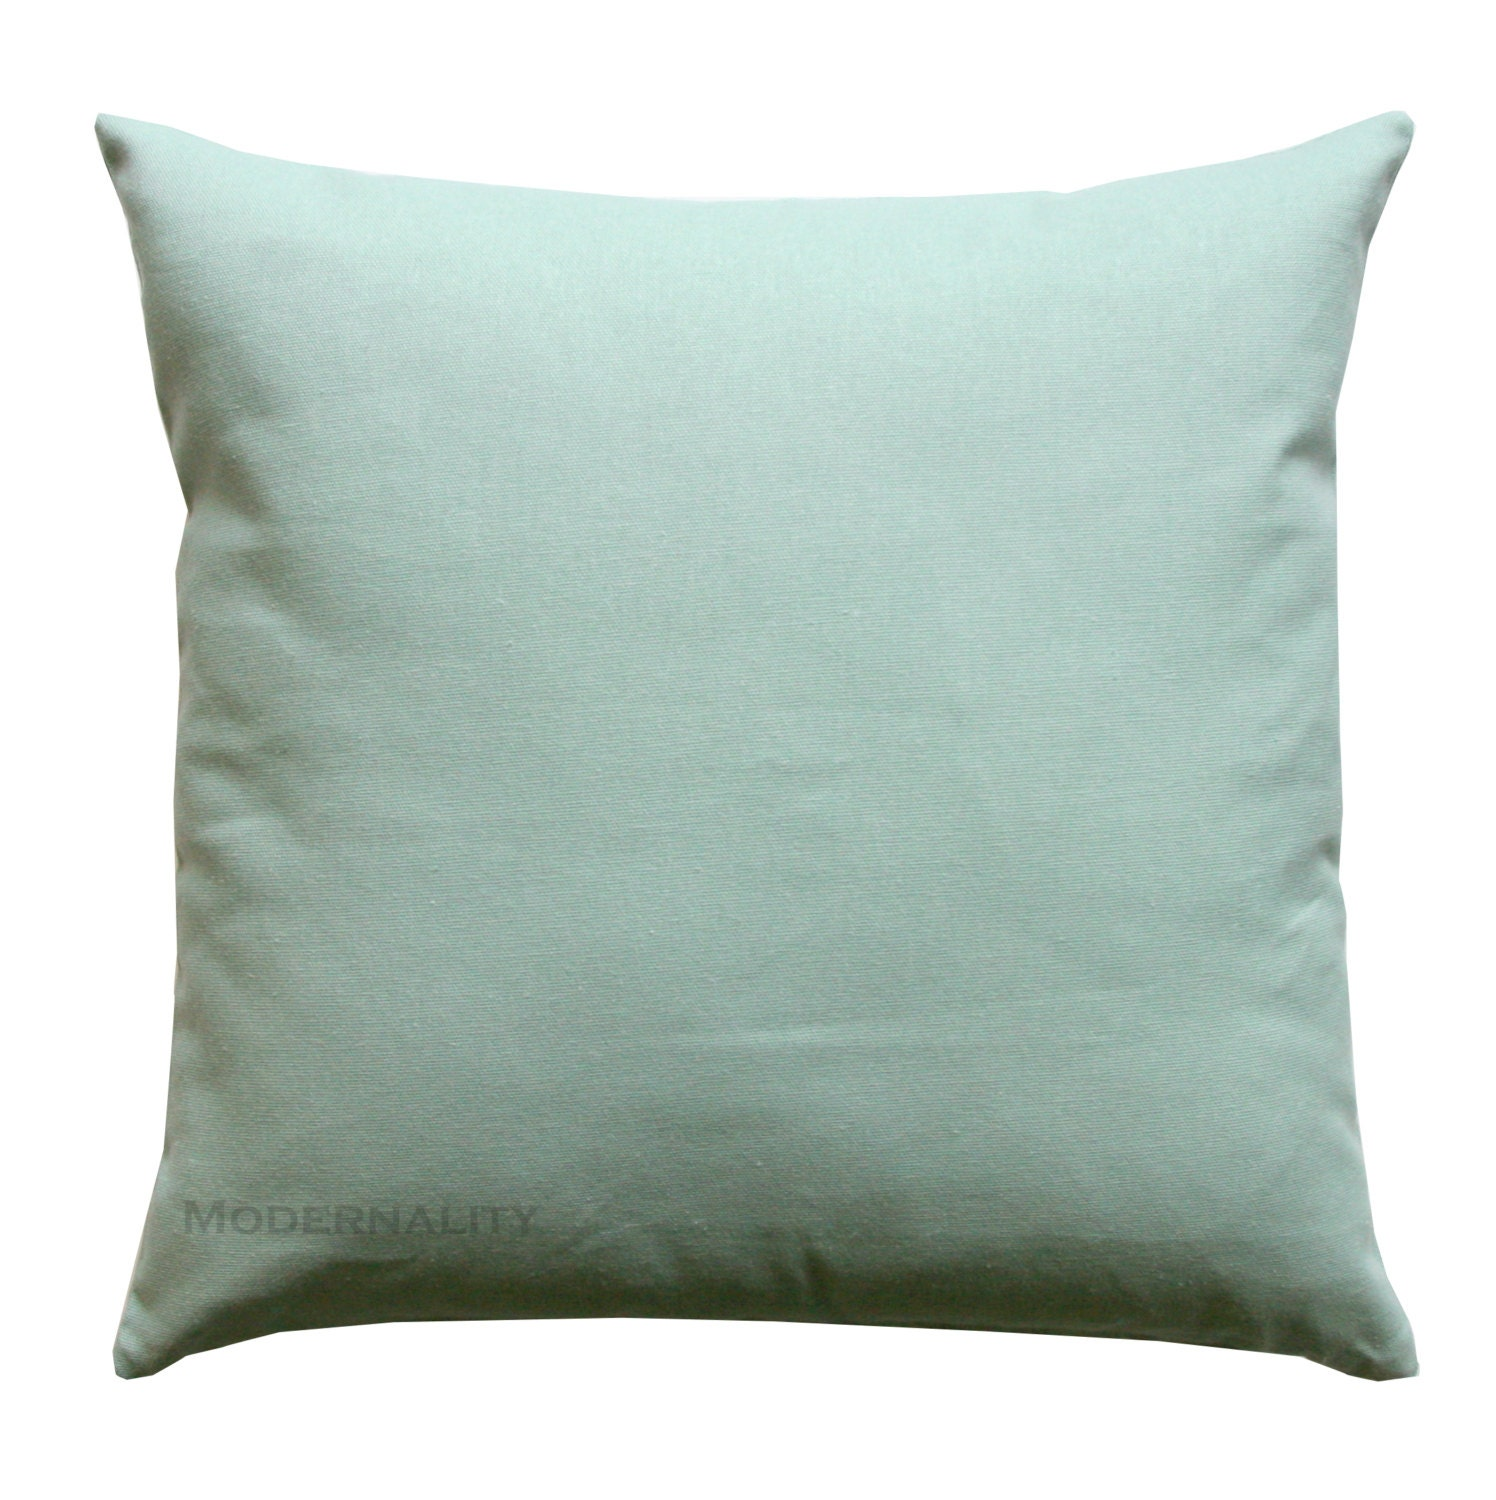 Solid Blue Throw Pillow : Solid Throw Pillows Village Blue Dyed Solid Pillow Cover